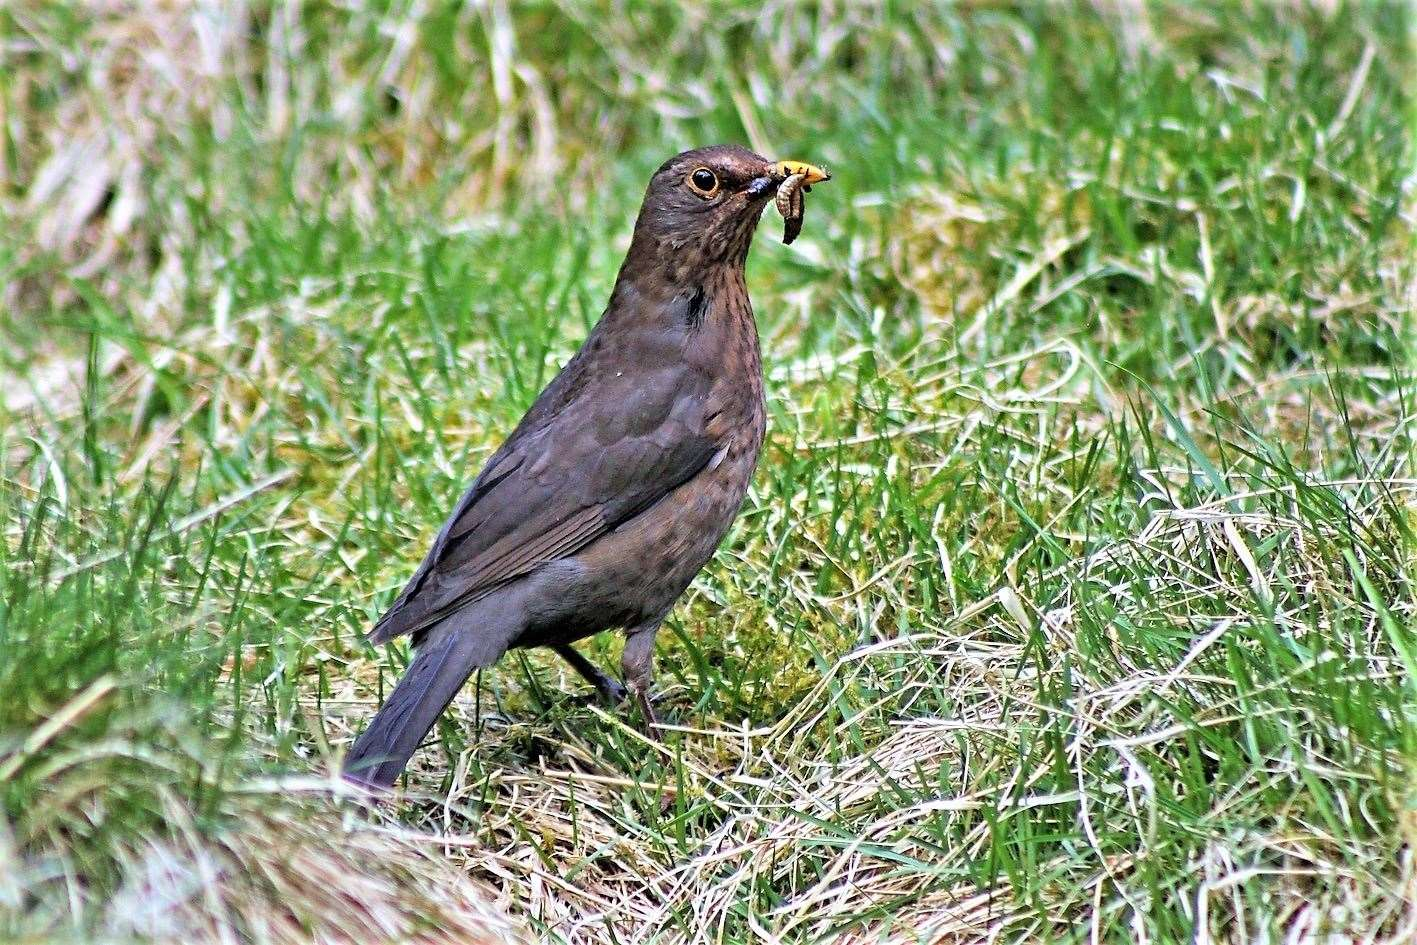 Blackbirds were the most common sightings.